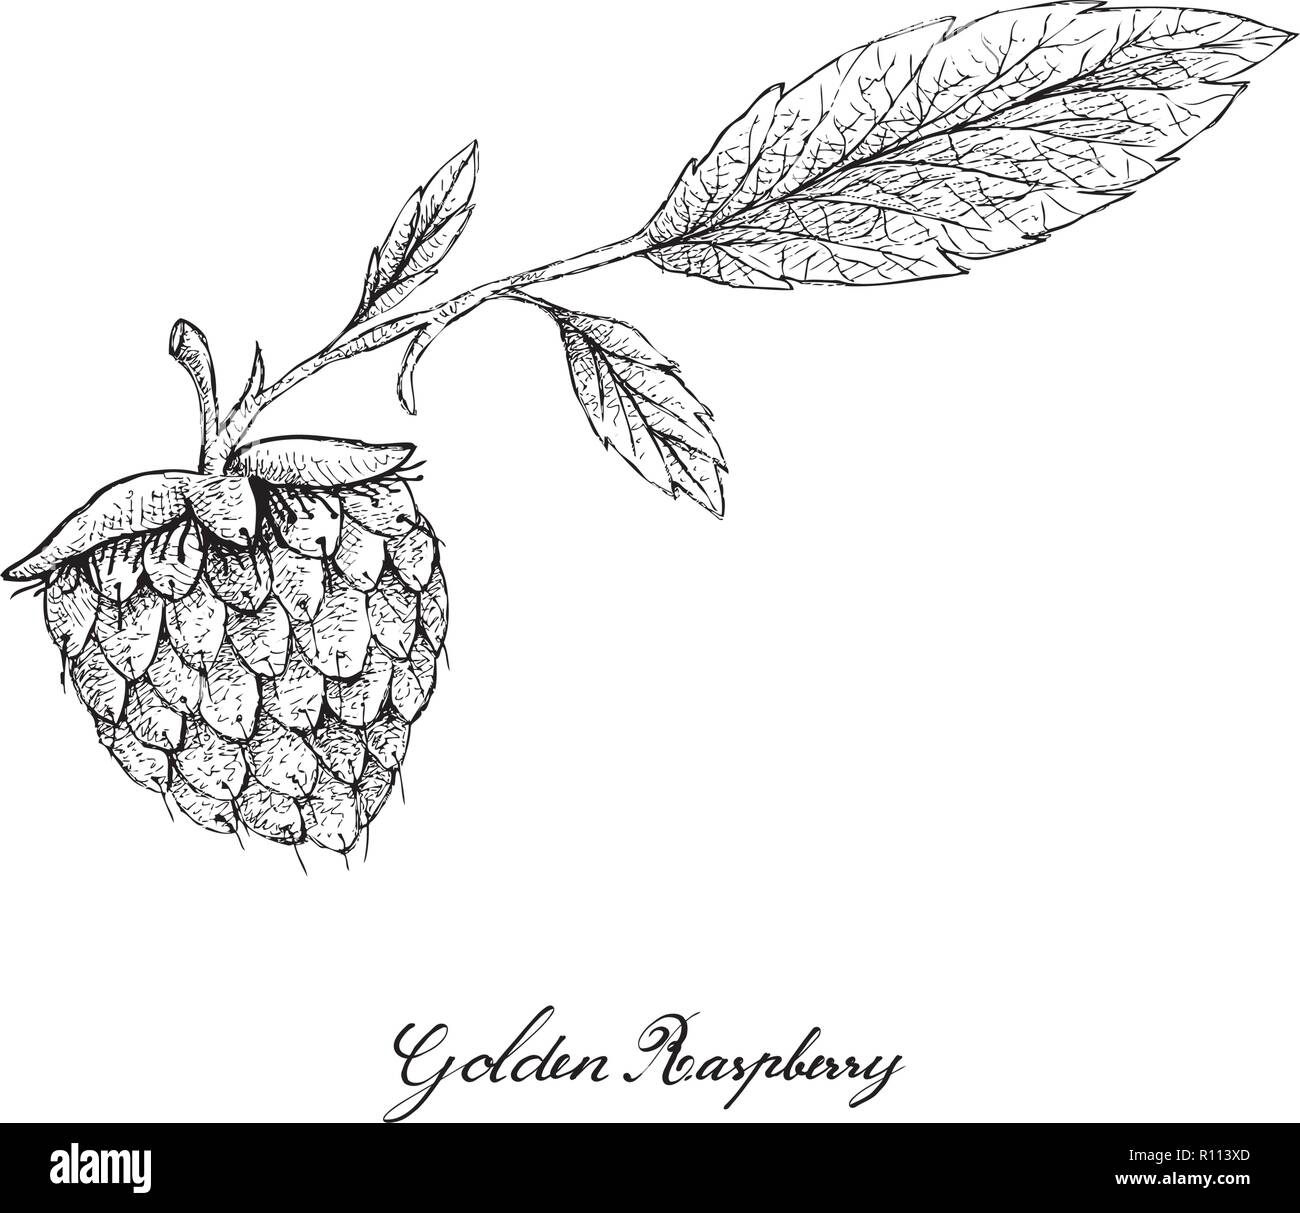 Berry Fruits, Illustration of Hand Drawn Sketch Delicious Fresh Golden Raspberries or Rubus Ellipticus Fruits Isolated on White Background. - Stock Vector